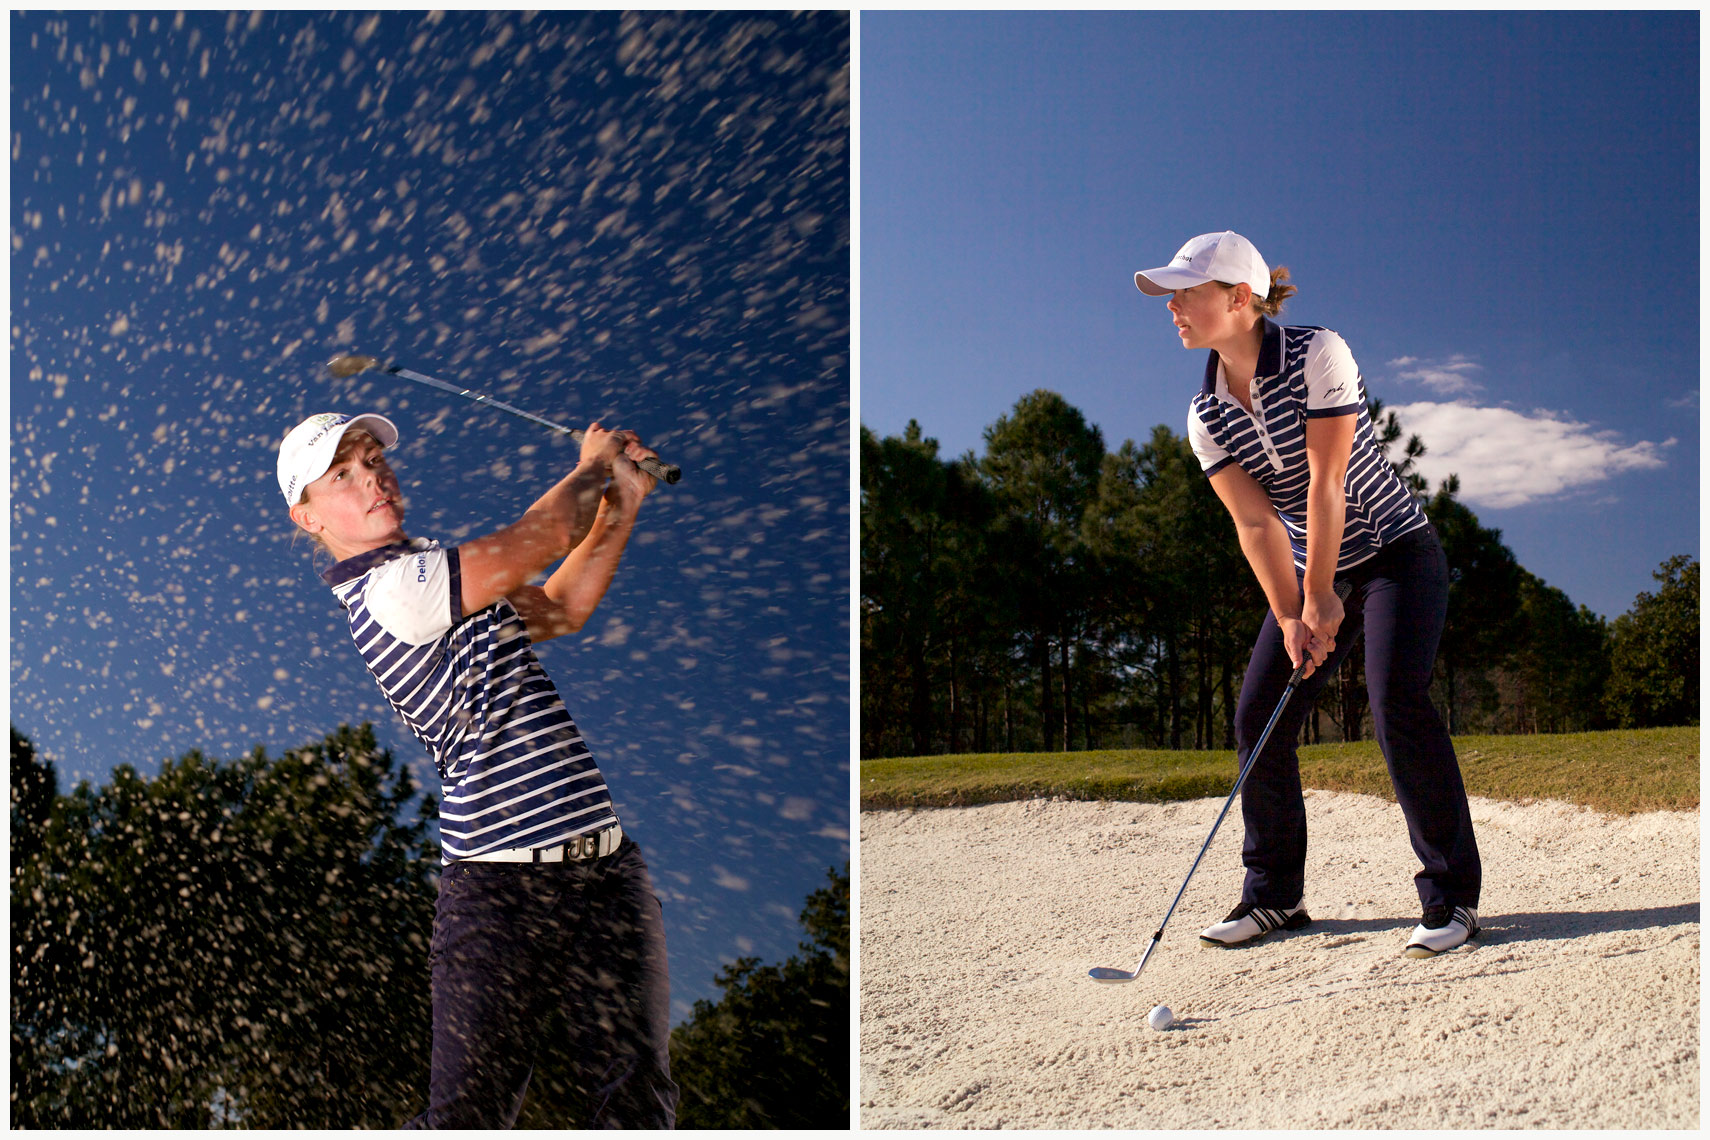 Christel Boeljon Location Portrait and Swing Sequence for Golfers Magazine